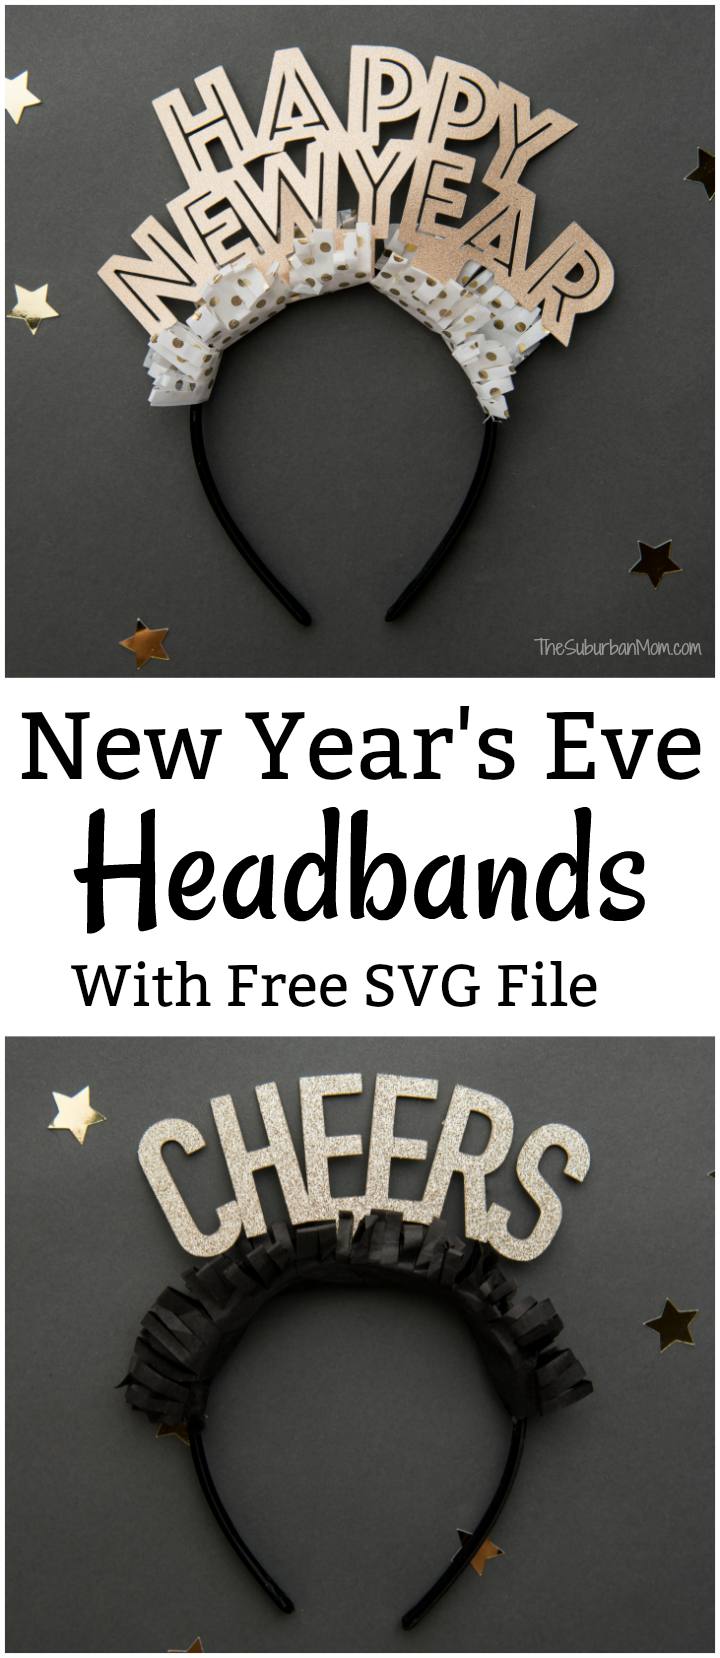 New Year's Eve Headbands Free SVG File